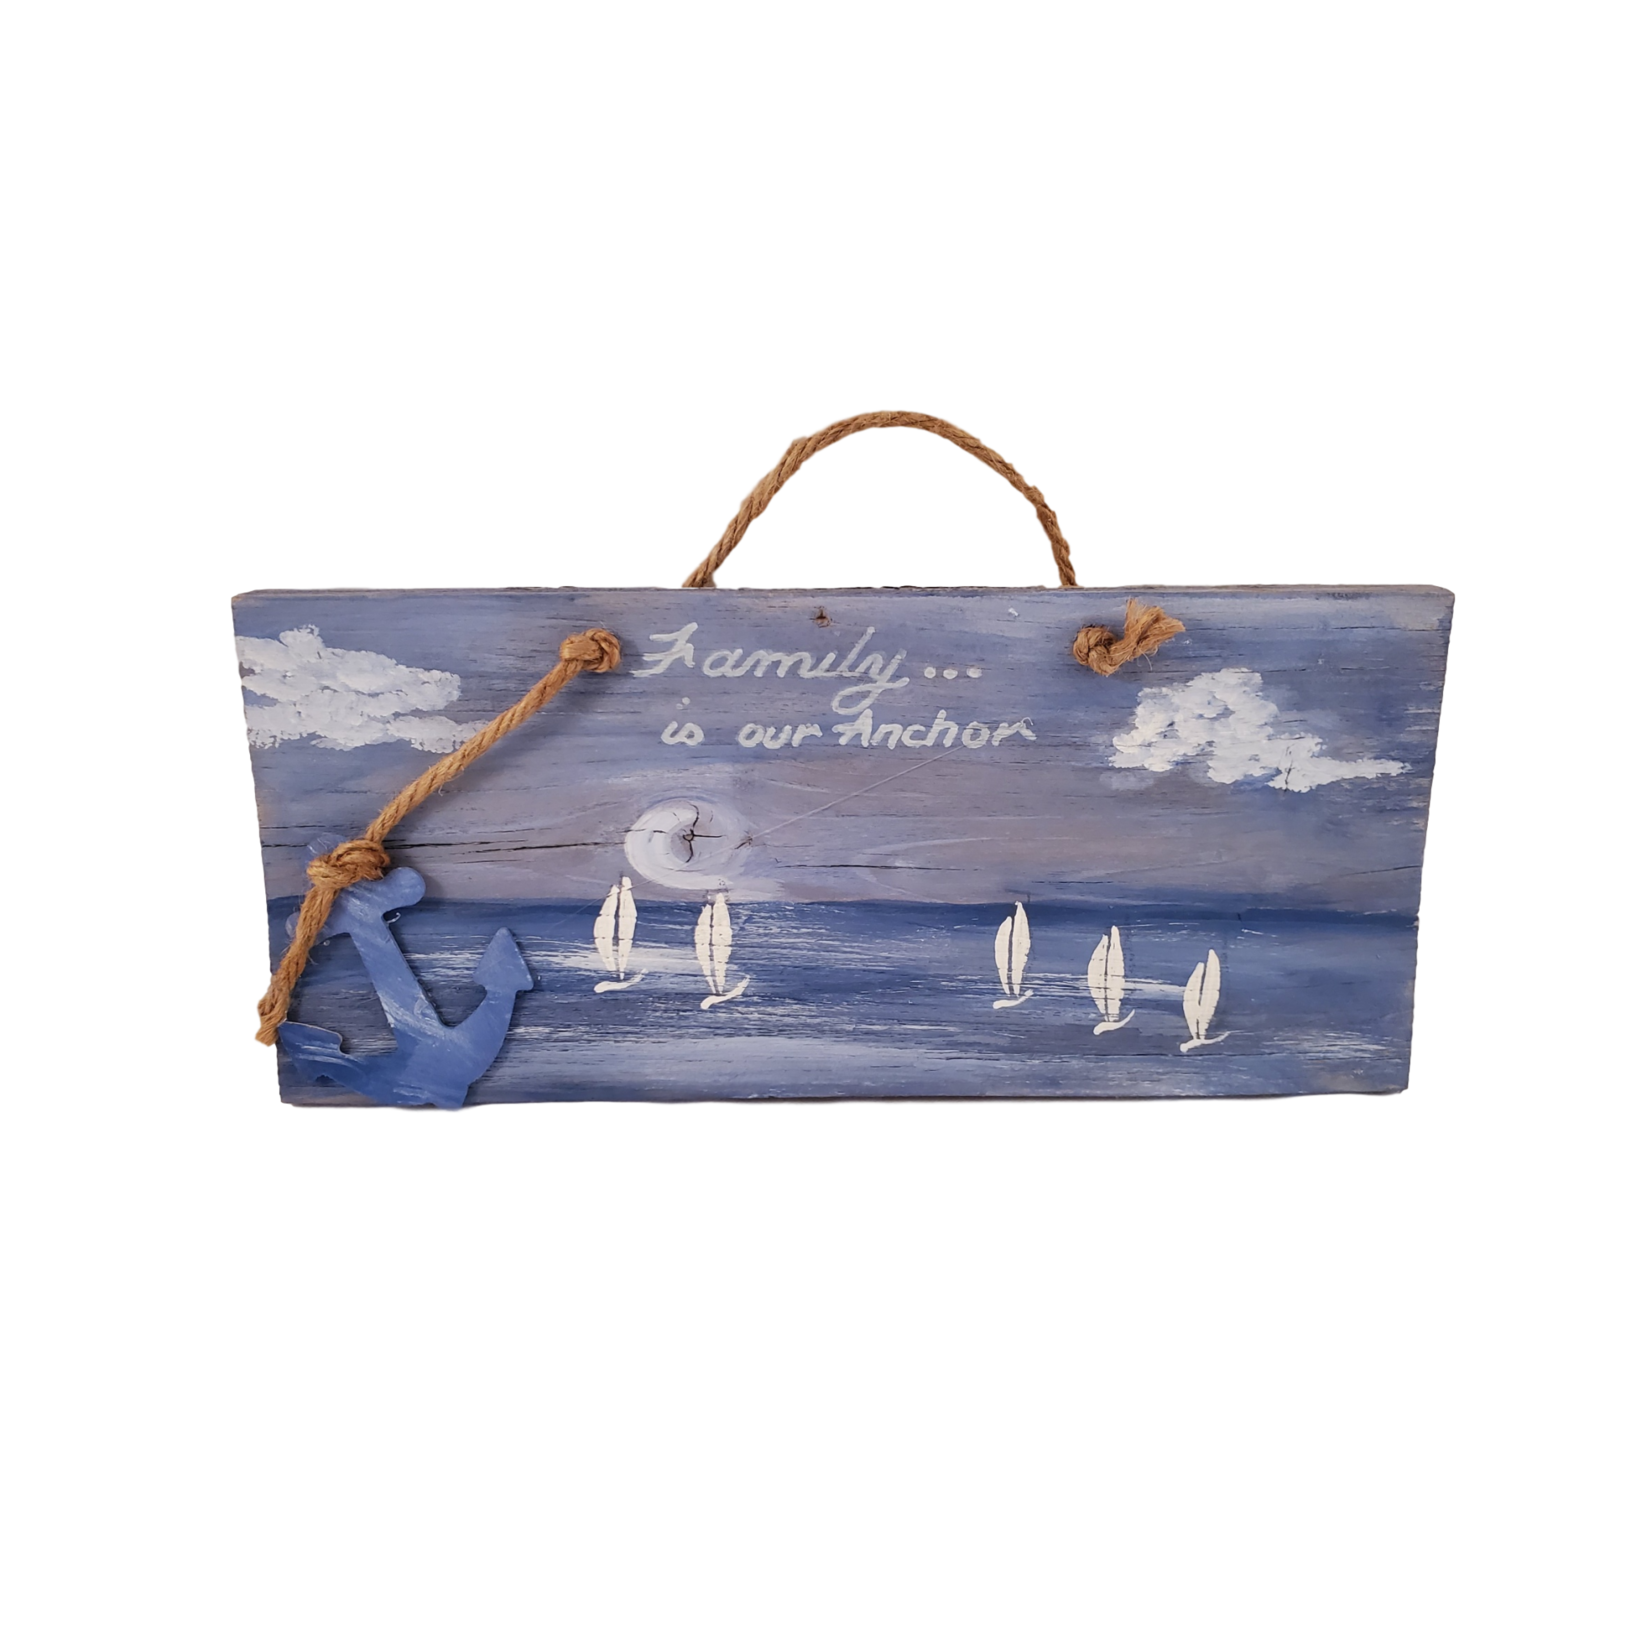 Off The Wall Gallery Hand-painted Sailboat Ocean Sign